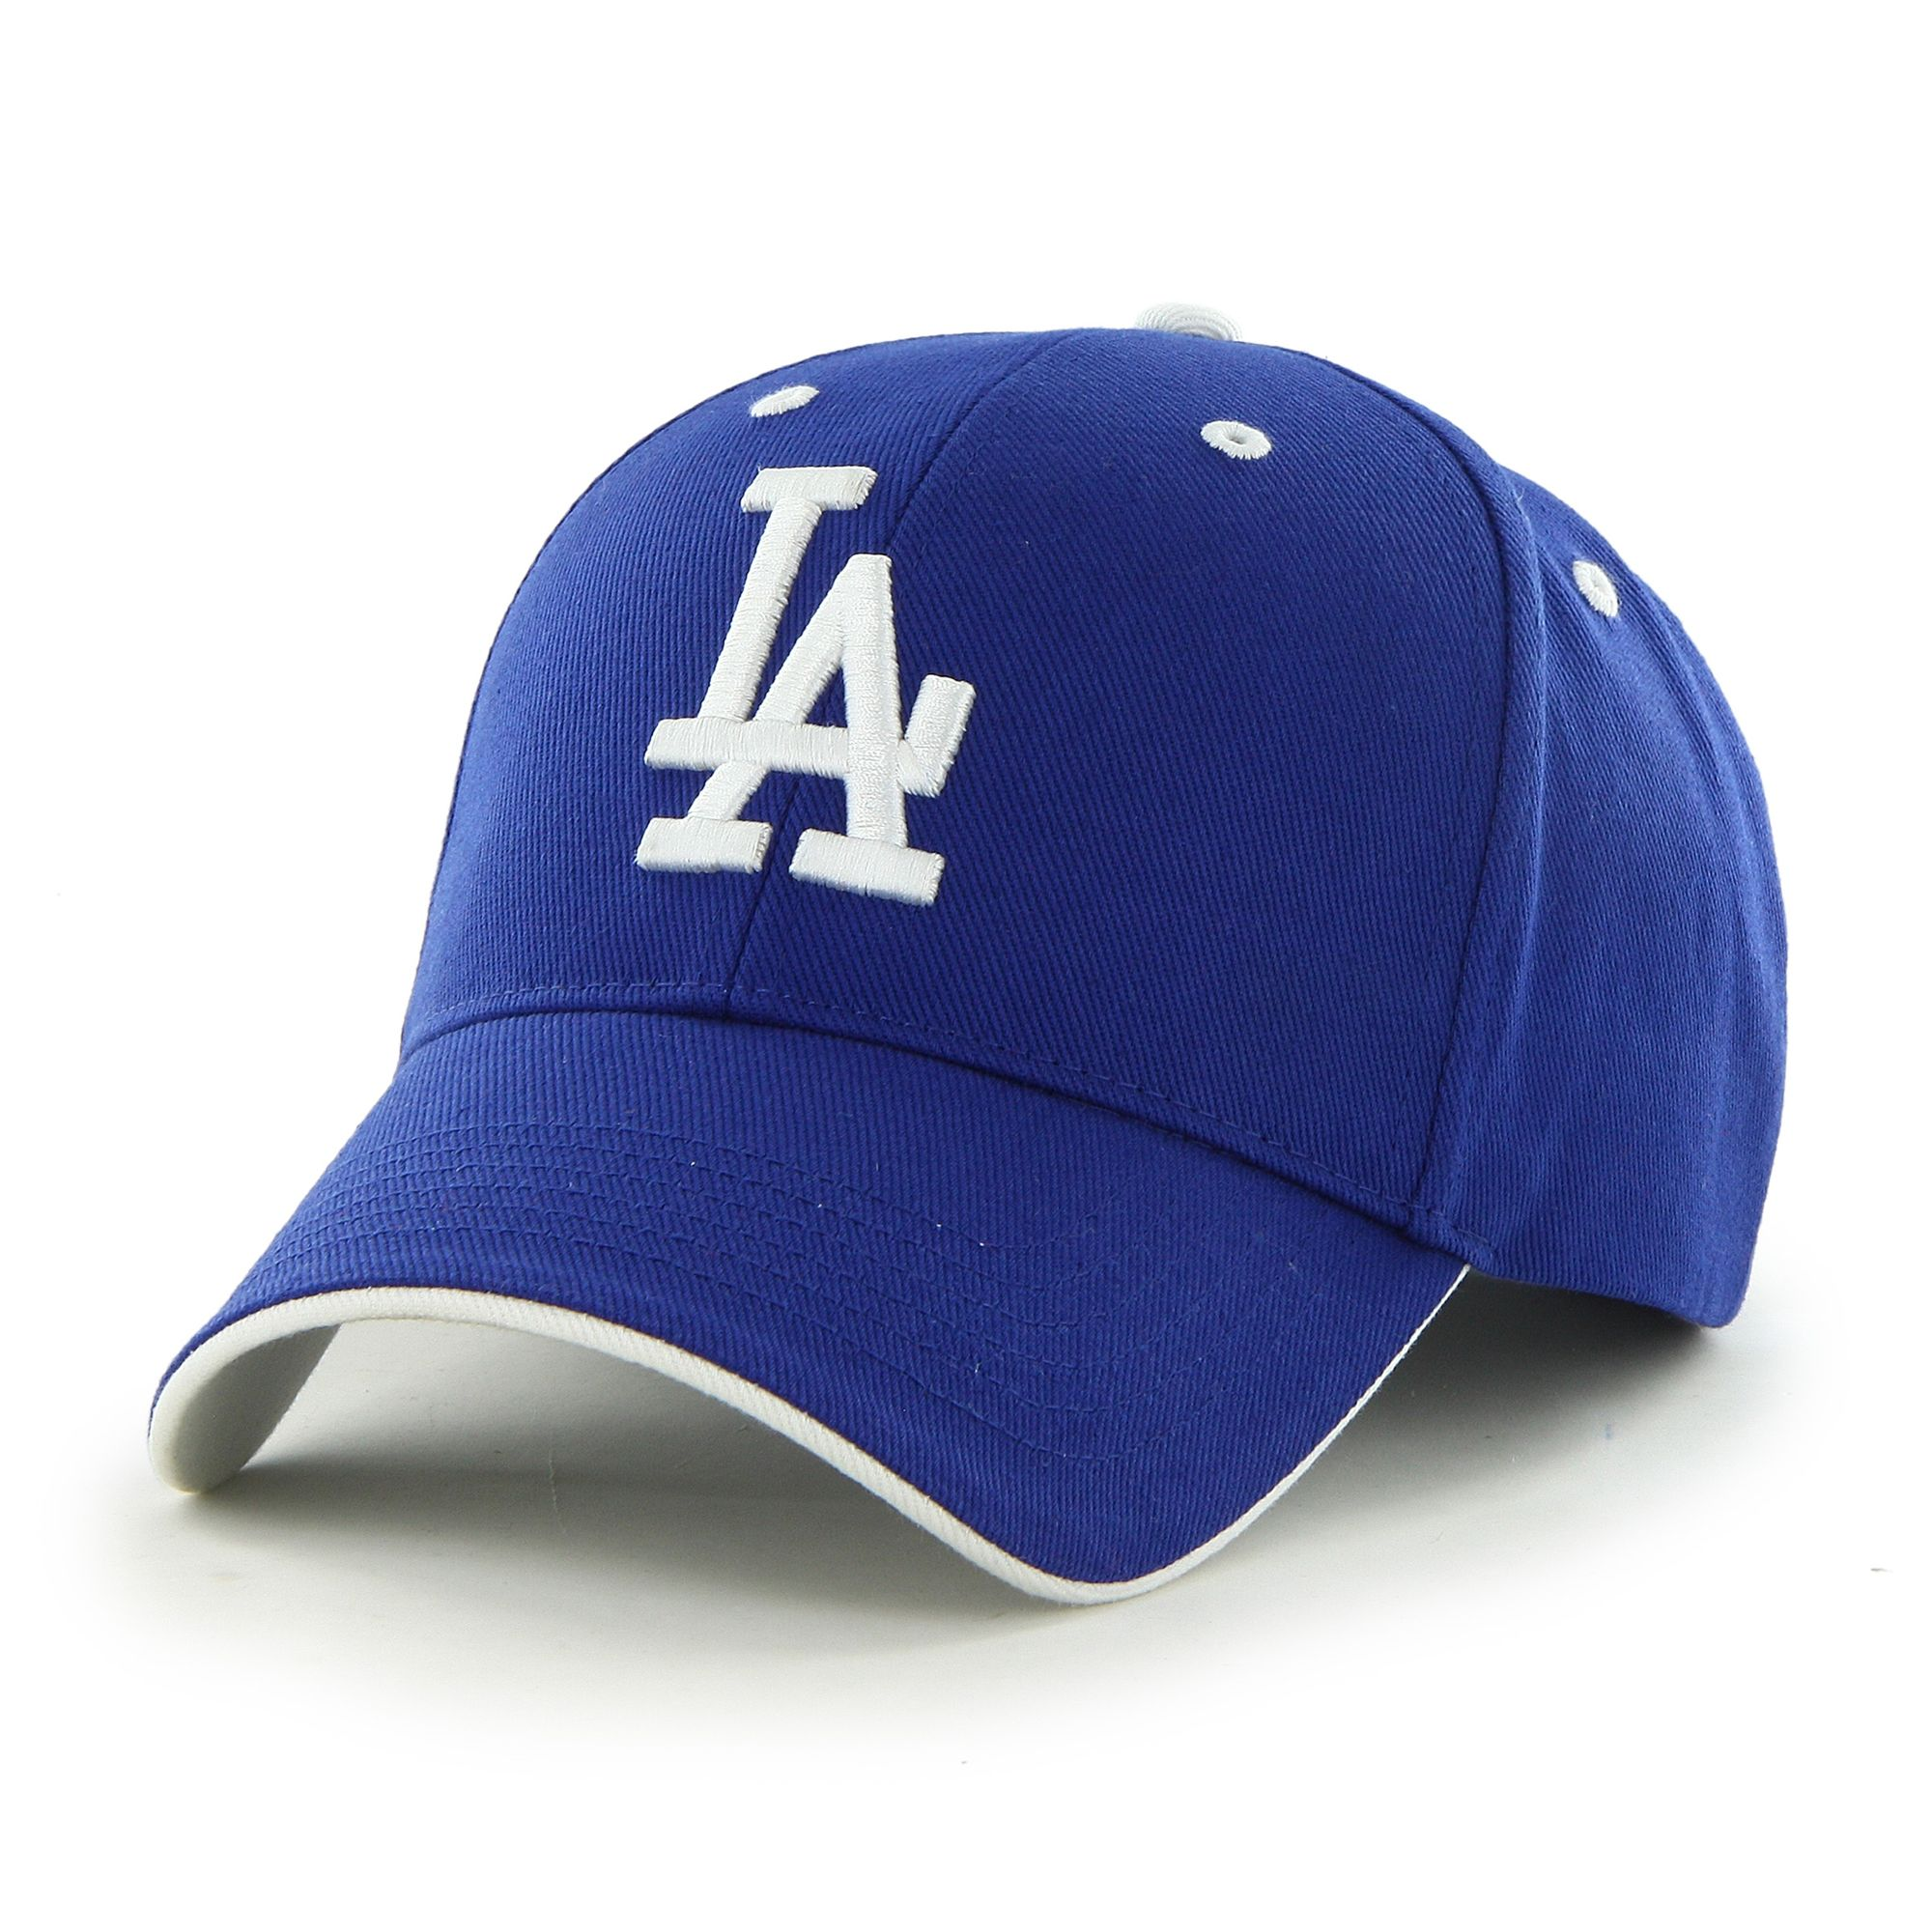 hot sale online 62646 dc04a Los Angeles Dodgers 47 Brand Royal Franchise Fitted Hat - Detroit Game Gear